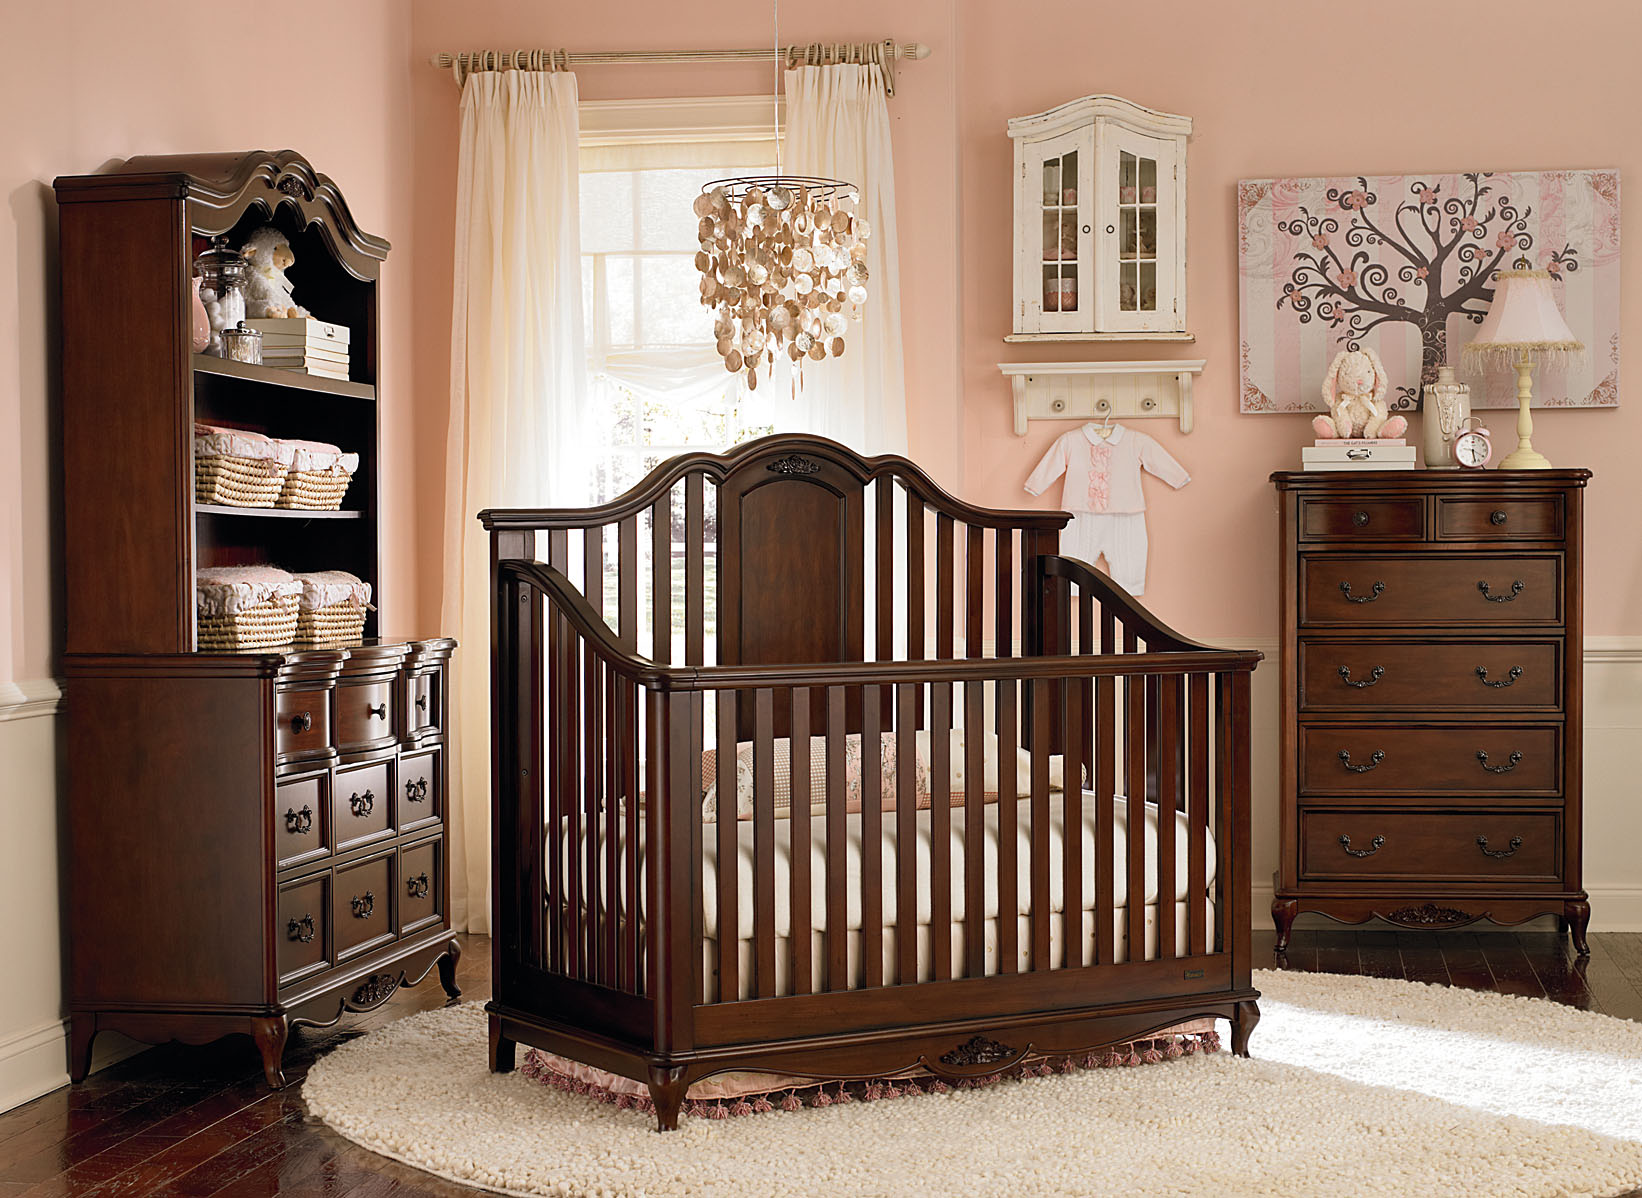 baby bedroom furniture decoration designs guide best decoration designs guides 10144